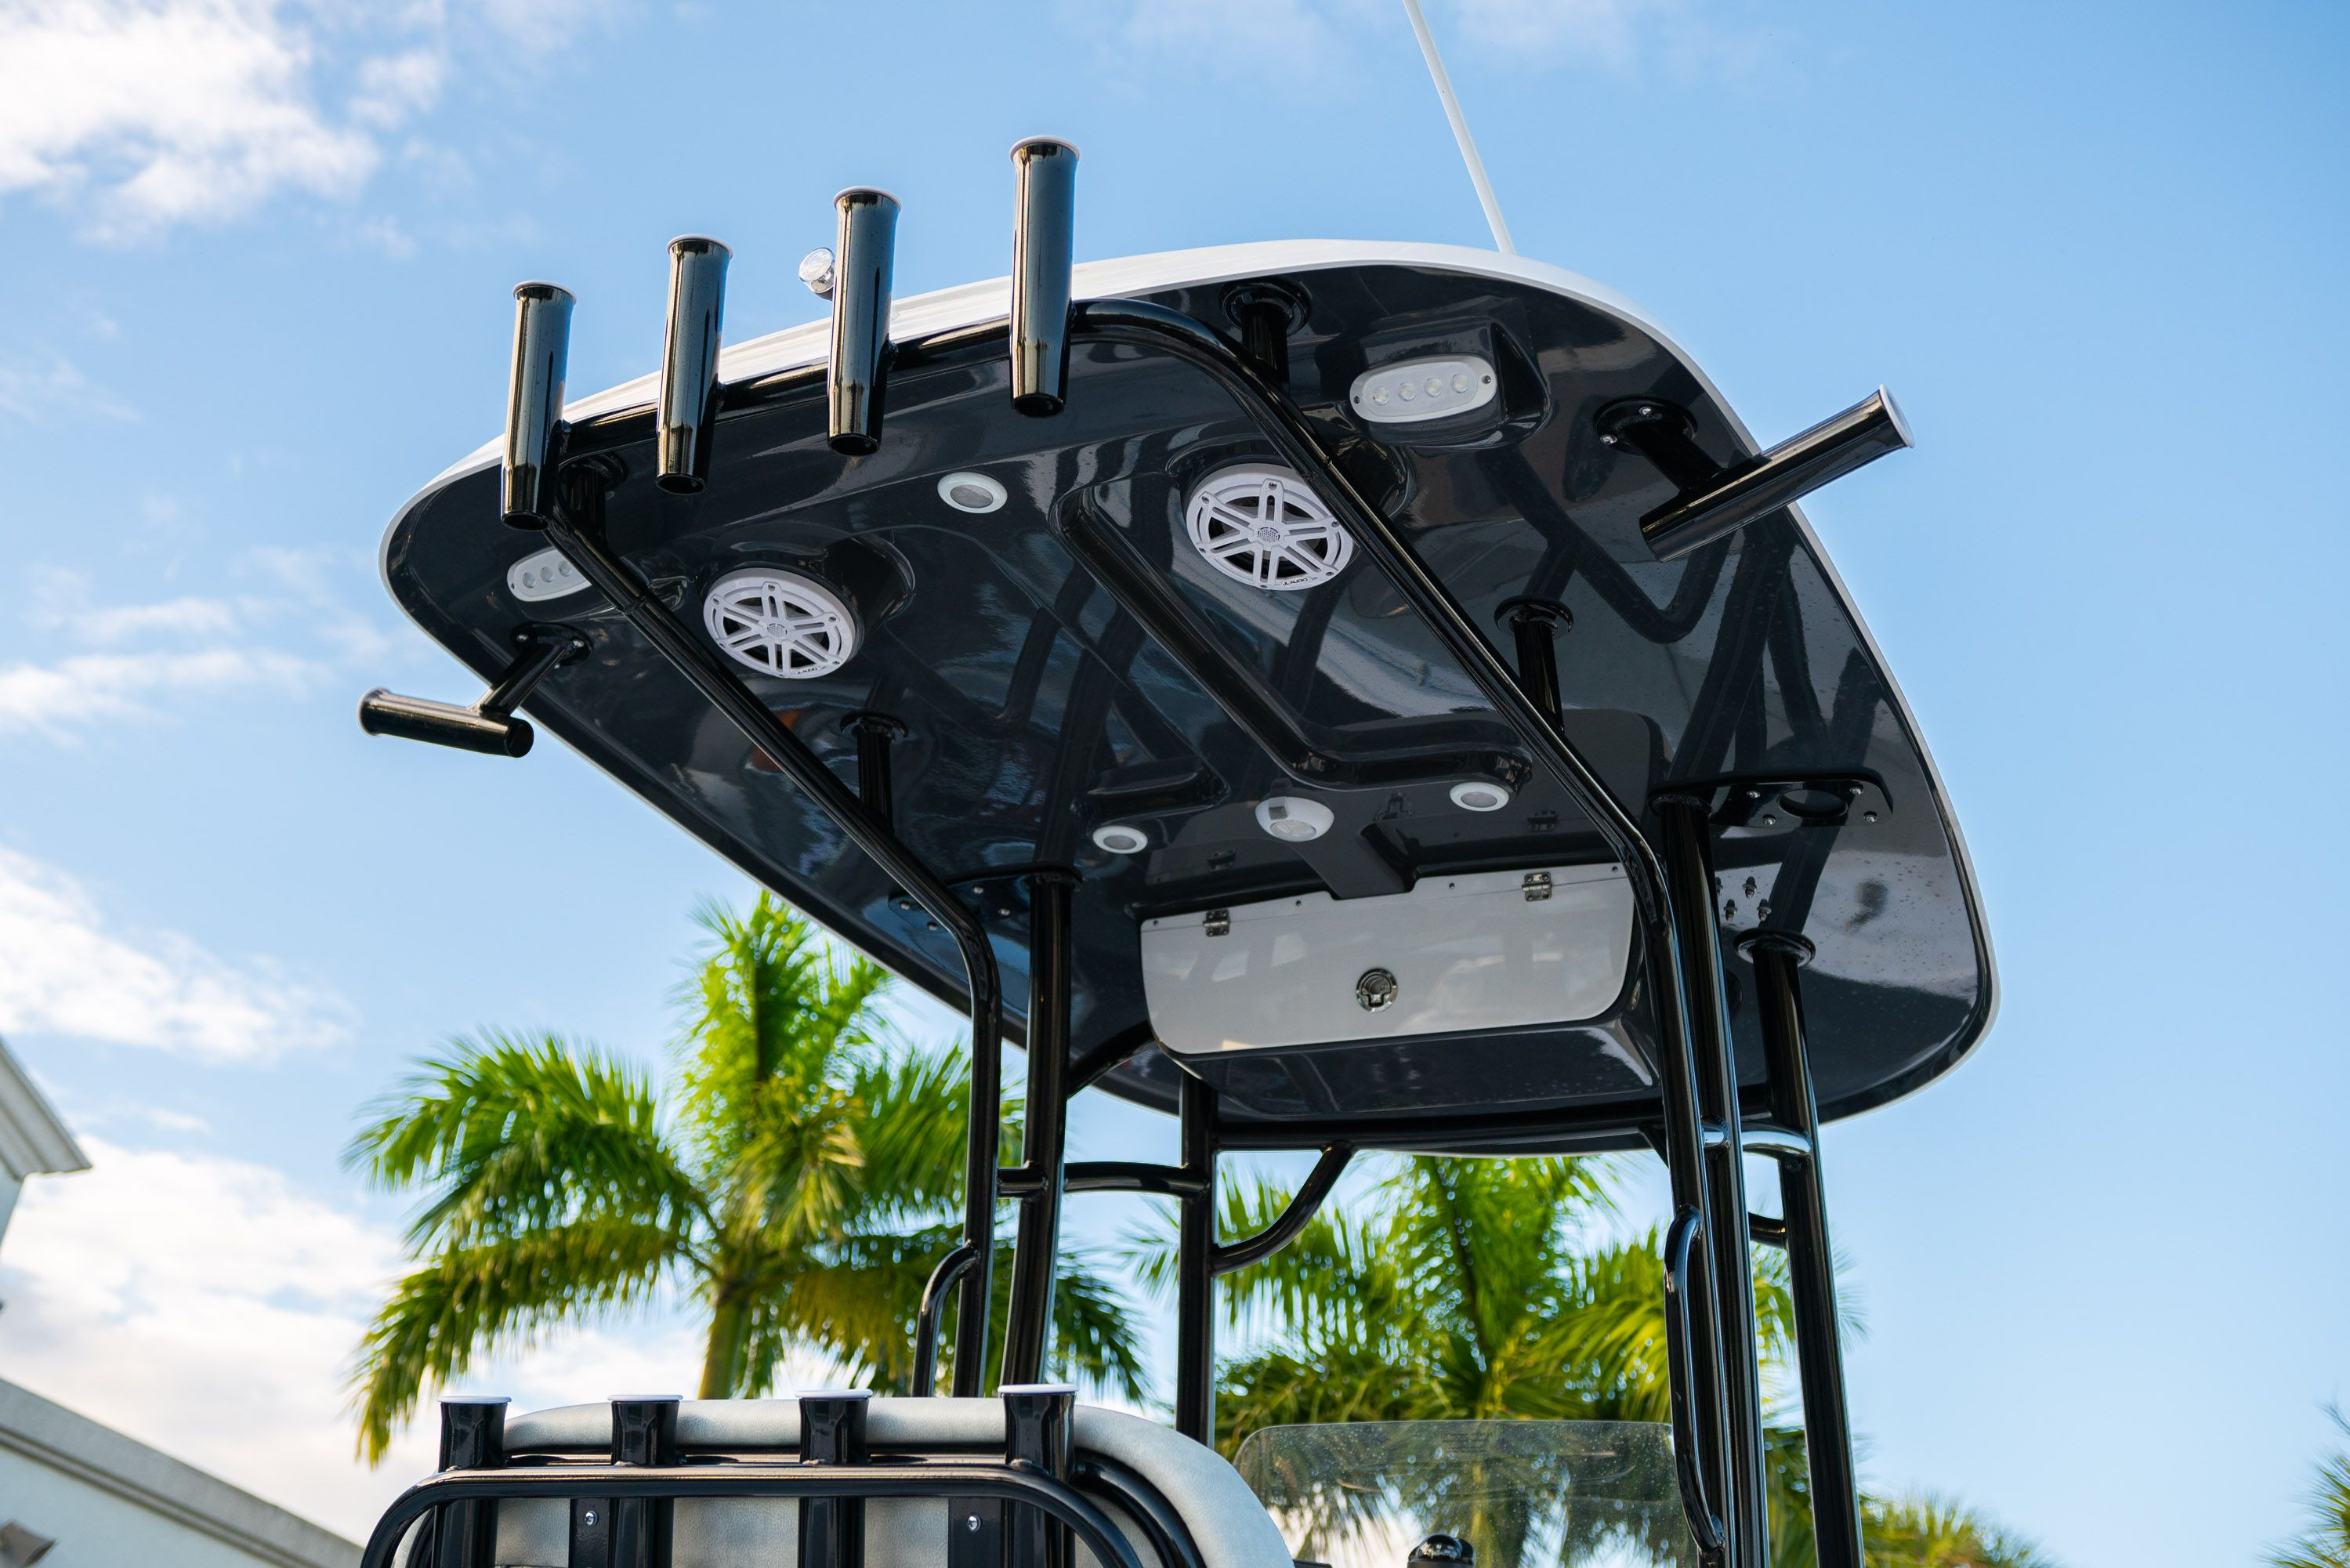 Thumbnail 8 for New 2020 Sportsman Open 232 Center Console boat for sale in West Palm Beach, FL